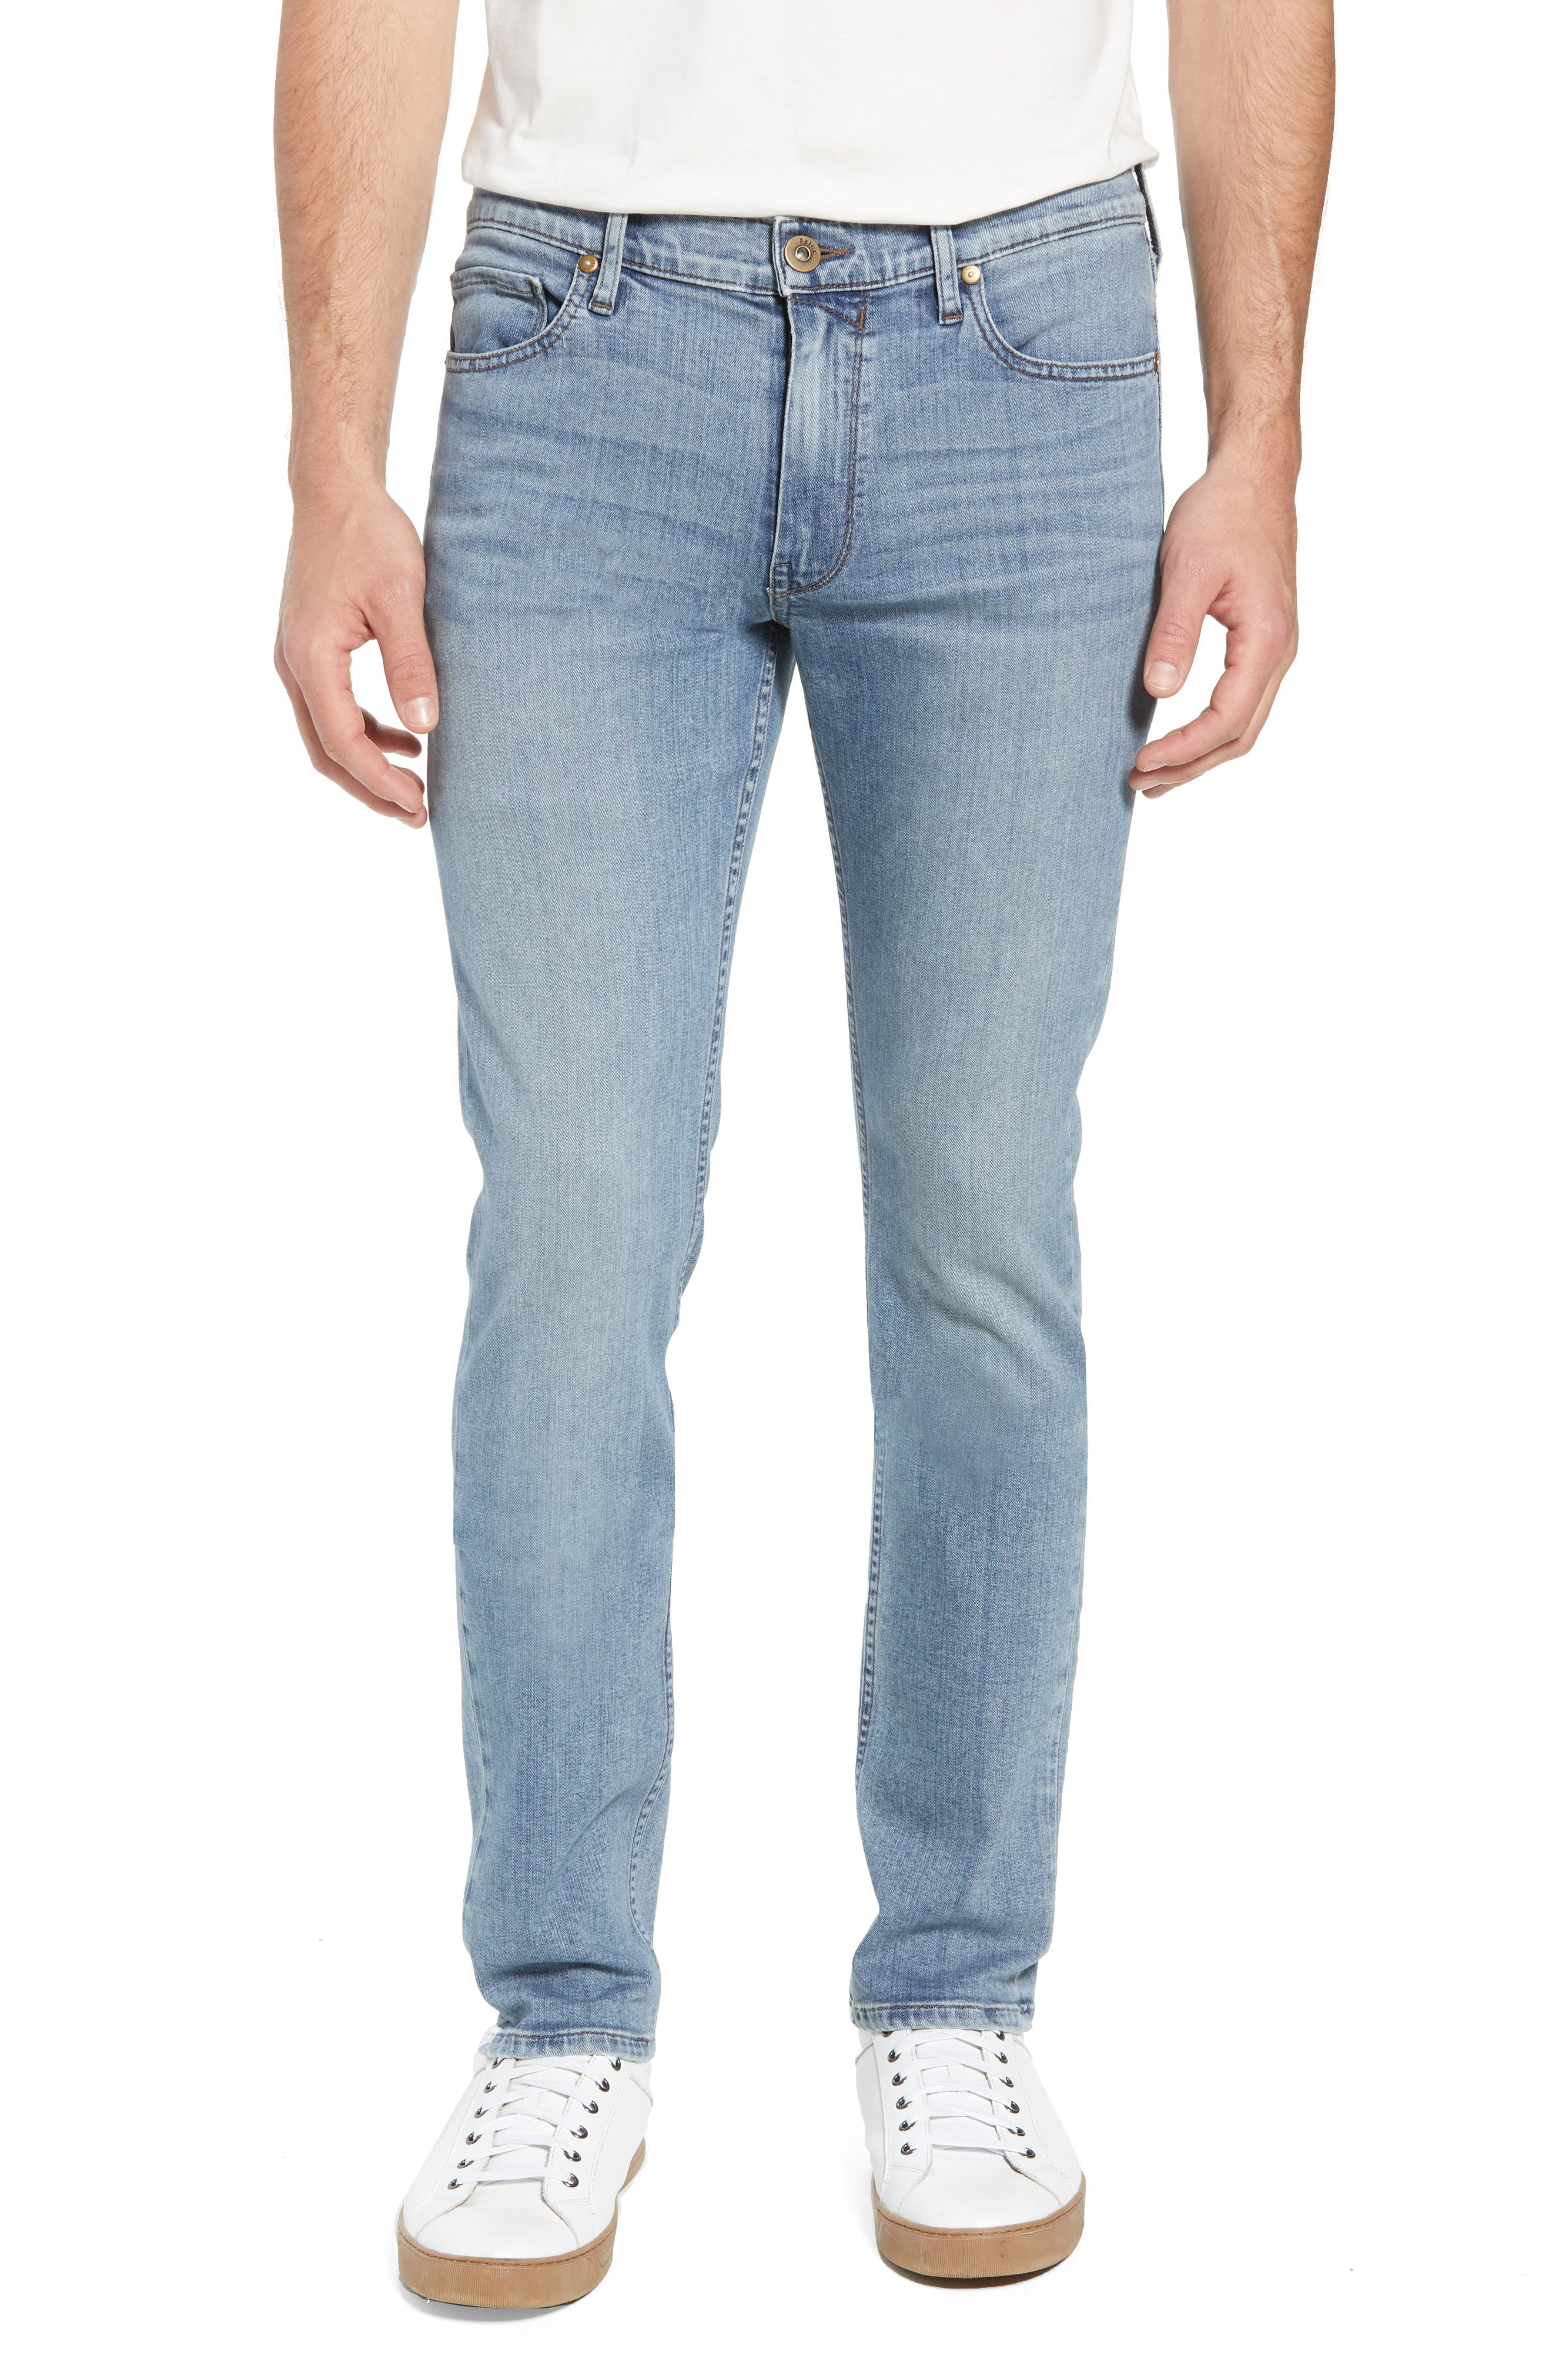 Transcend - Lennox Slim Fit Jeans,                         Main,                         color, Porter